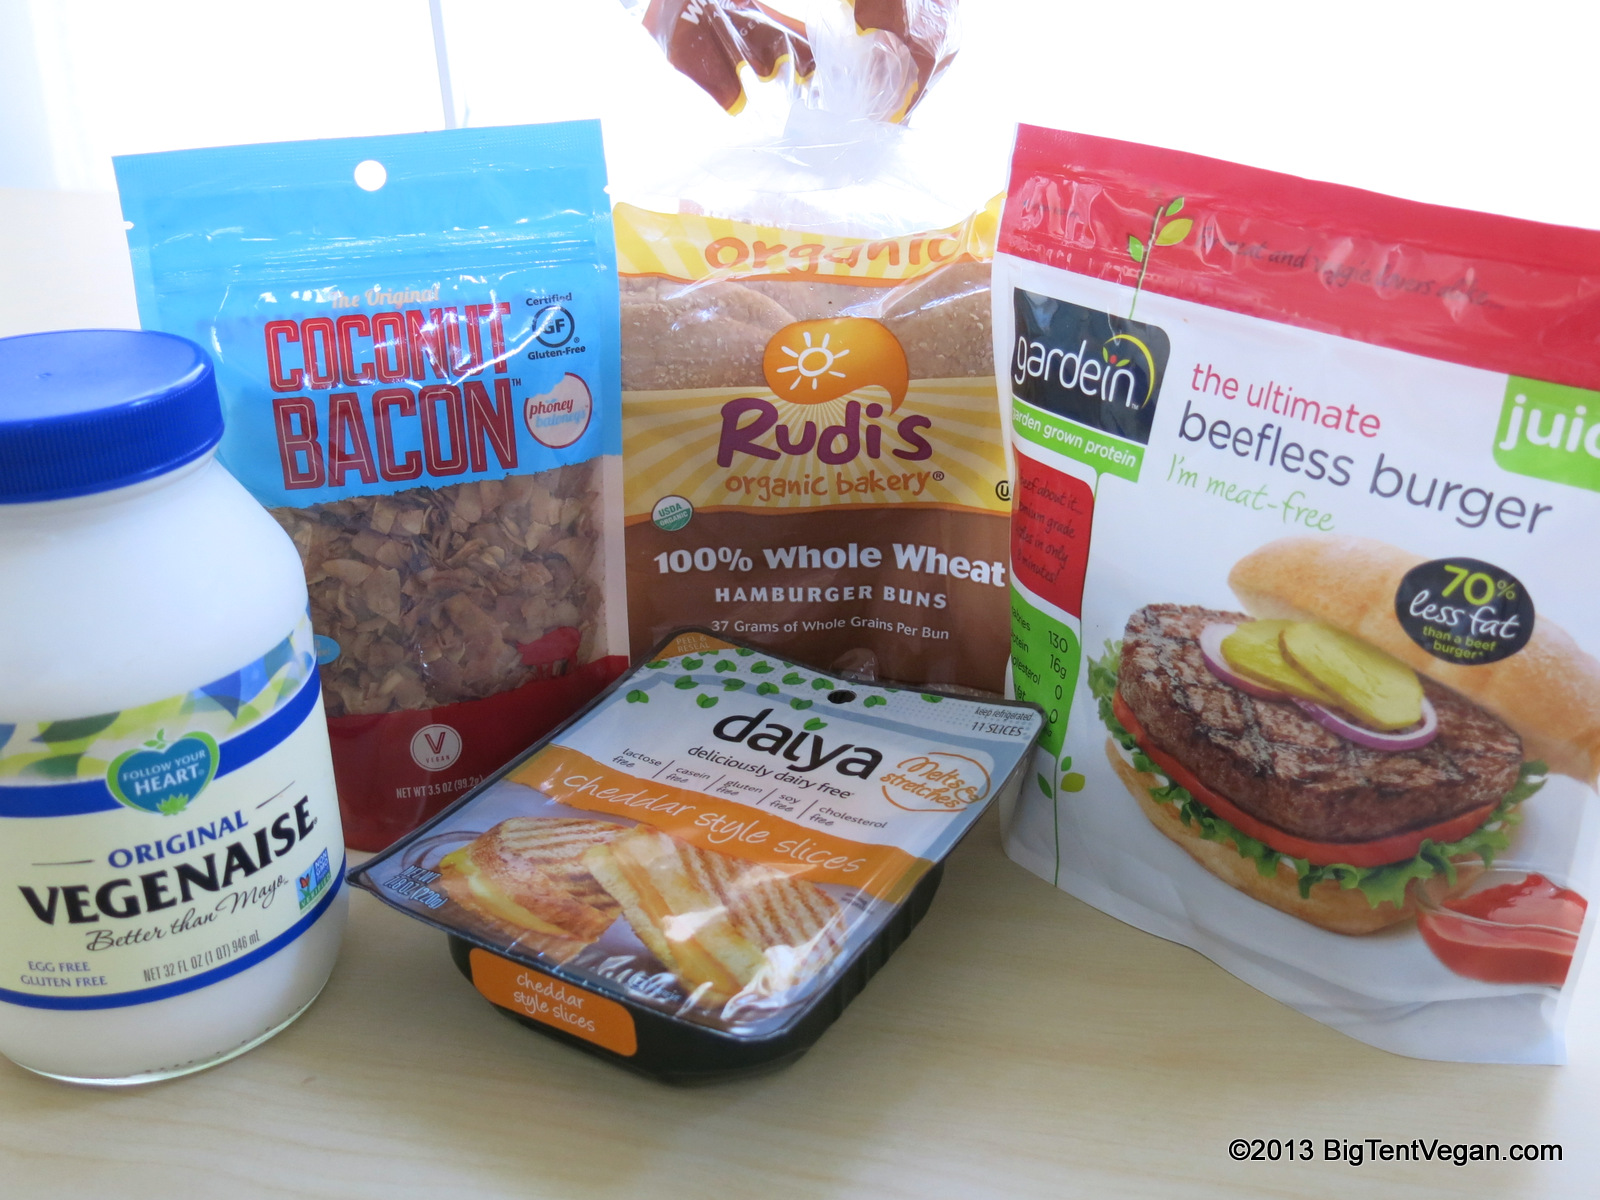 Ingredients used to make our Vegan Bacon Cheeseburgers at home:  Vegenaise Mayo ,  Phoney Baloney's Coconut Bacon ,  Daiya Cheddar Style Slices ,  Rudi's Whole Wheat Buns , and  Gardein Beefless Burgers .